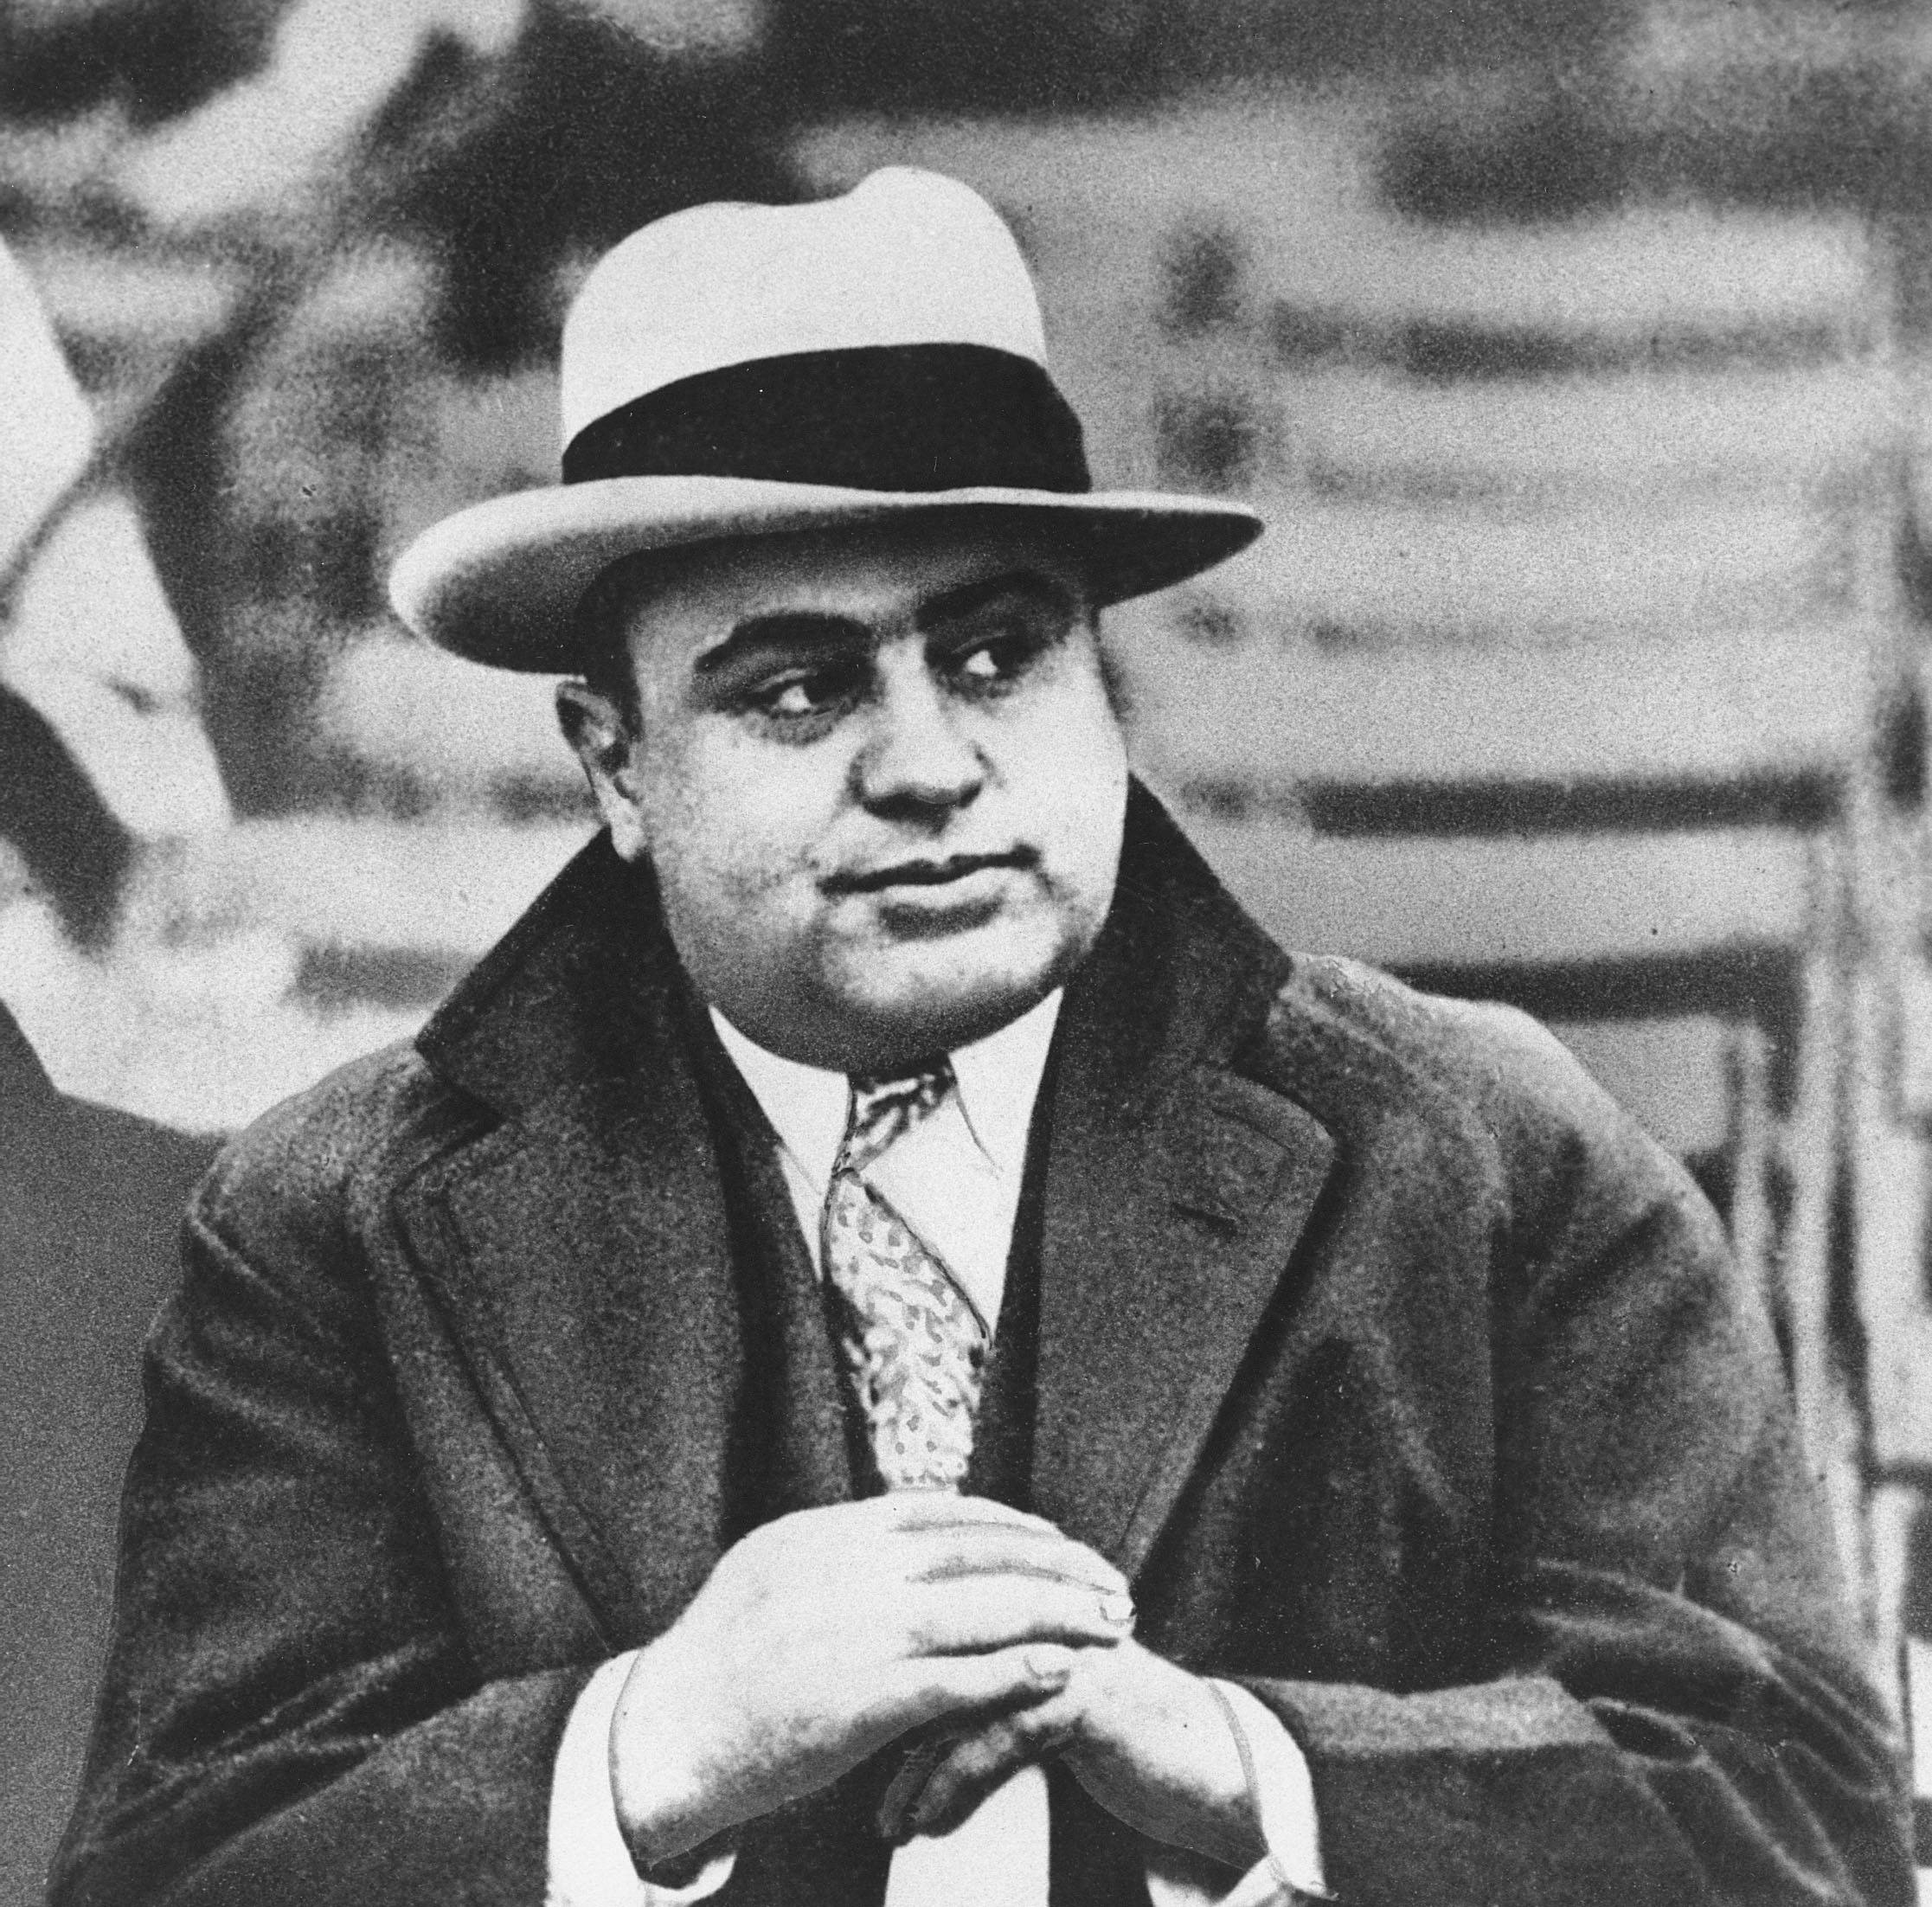 Chicago's known for Capone, but gangsters held sway in the suburbs and beyond